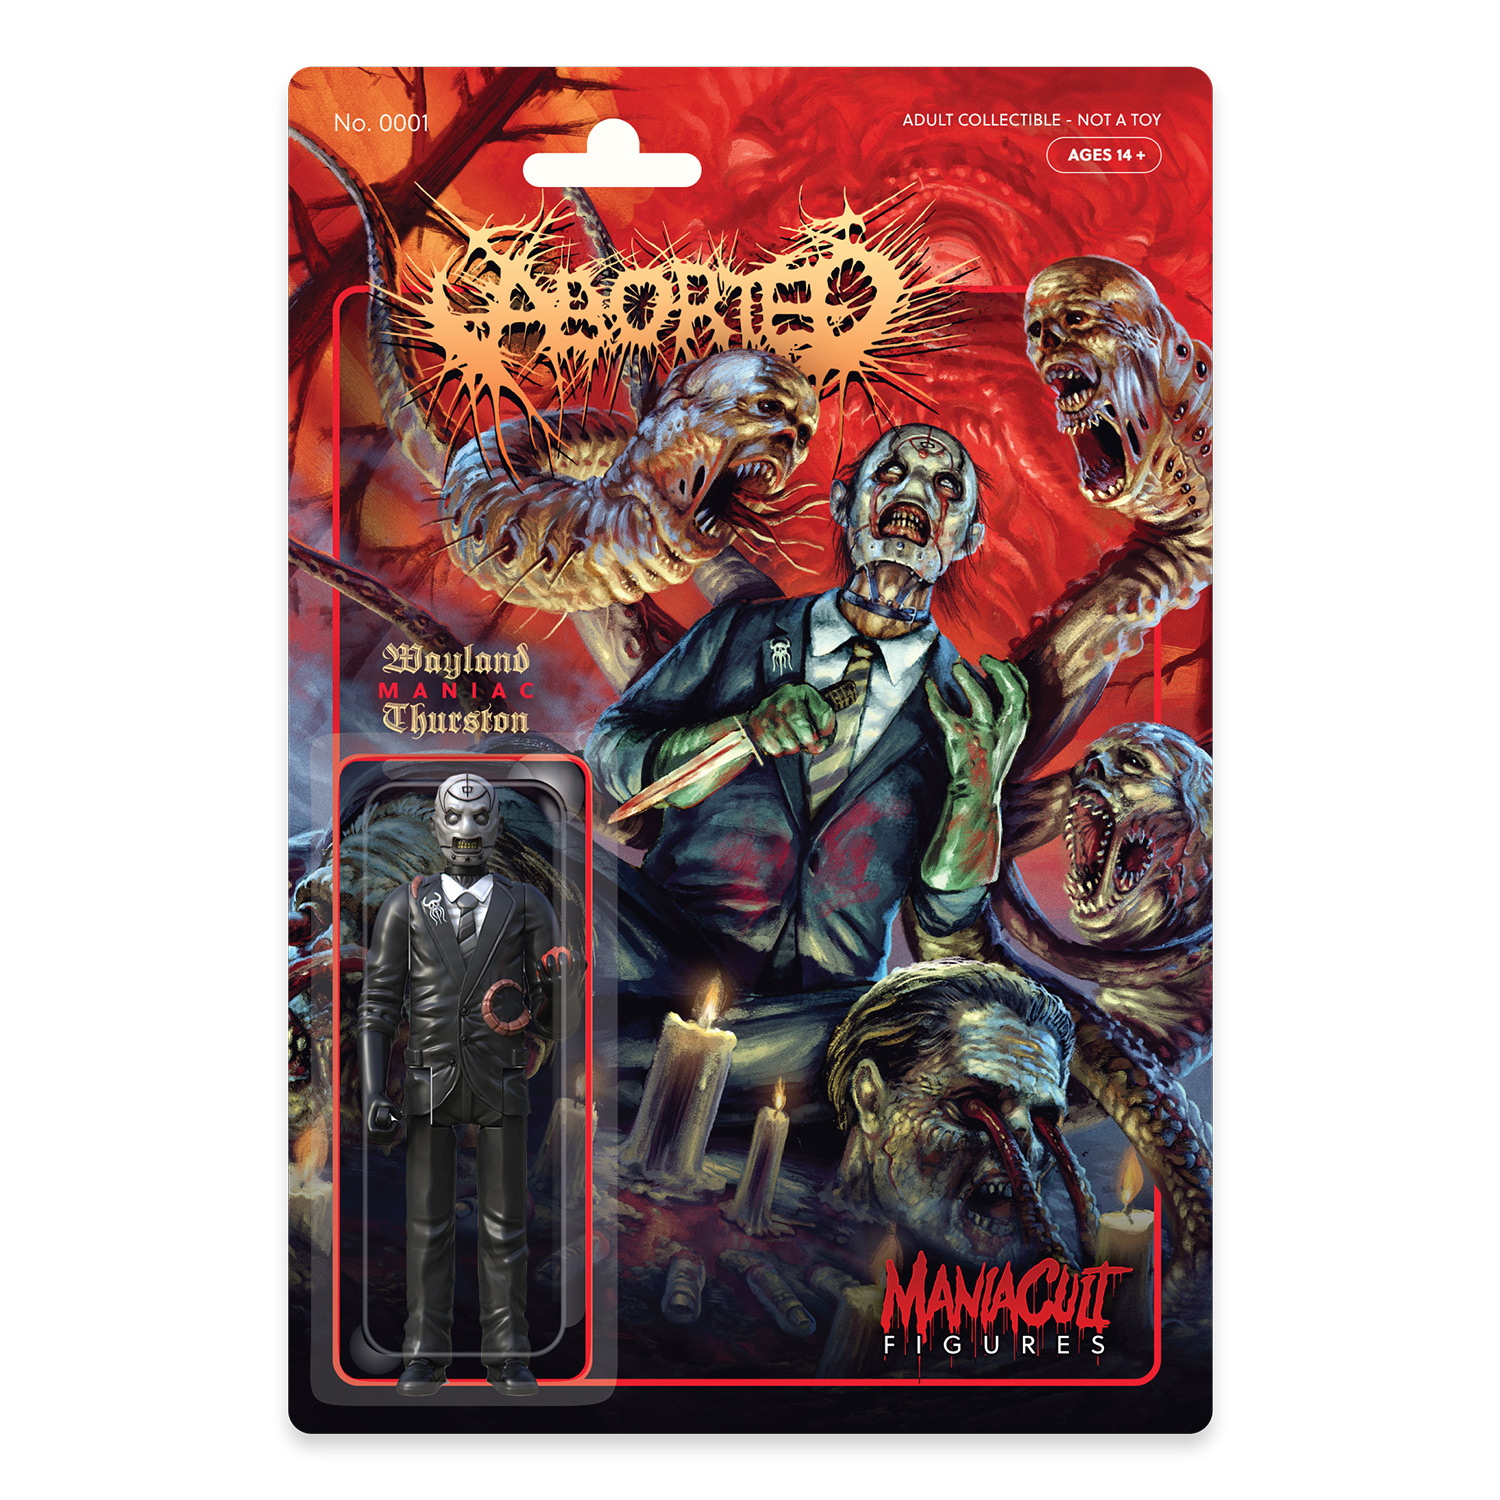 Maniacult Limited Edition Collector's Bundle